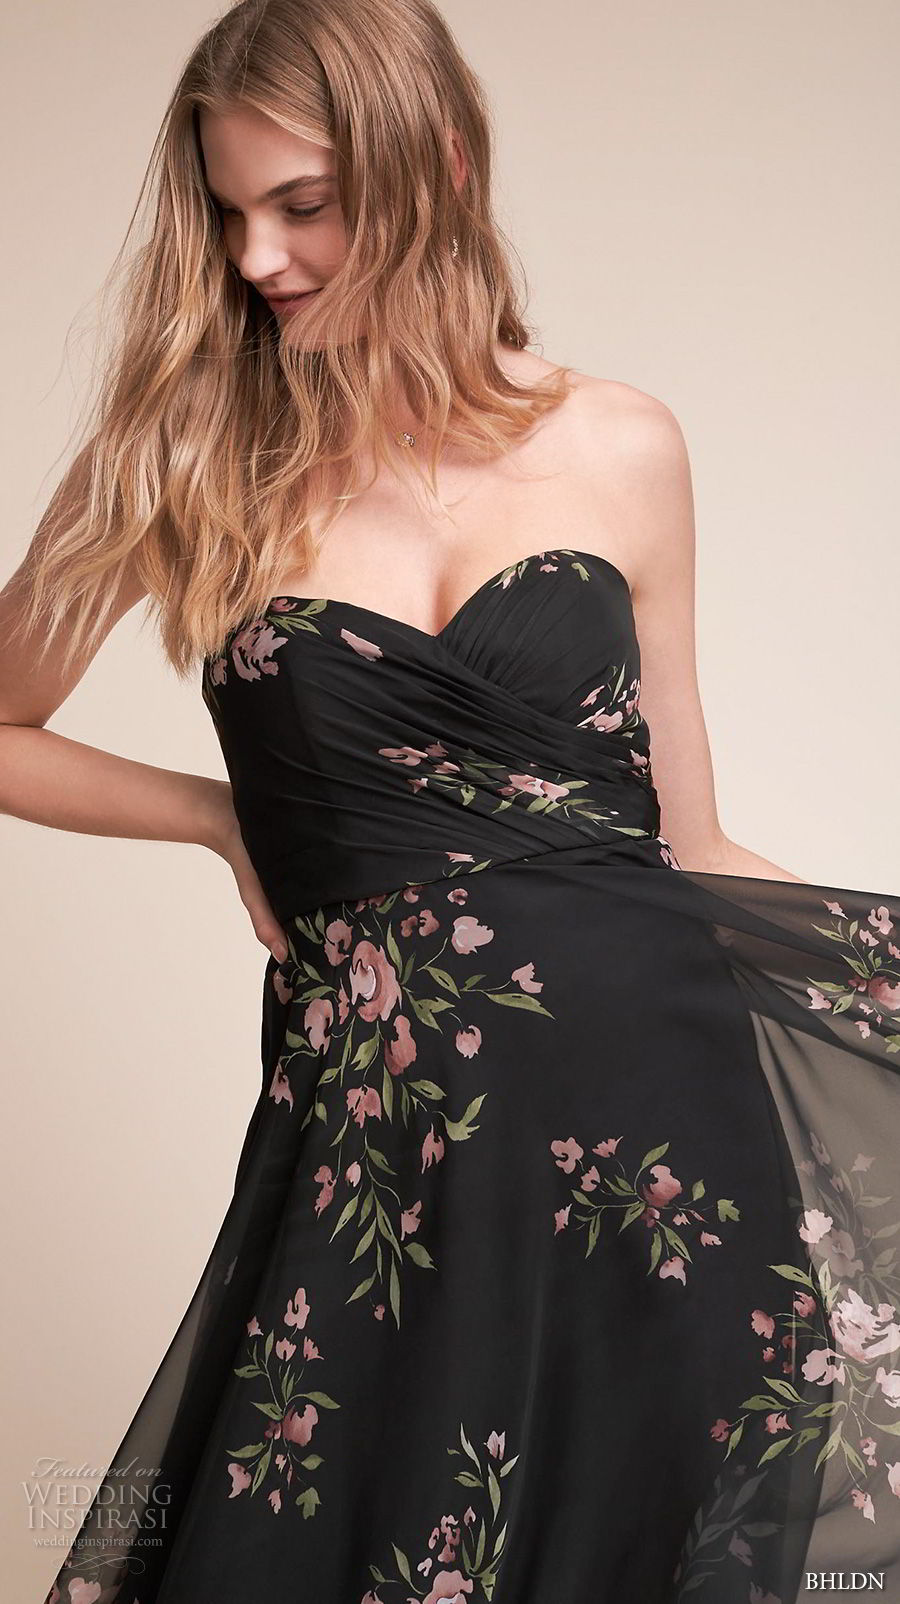 bhldn fall 2017  americana bridal strapless sweetheart neckline ruched wrap over bodice flora prints black color high waist soft a  line wedding dress sweep train (adeline) zv